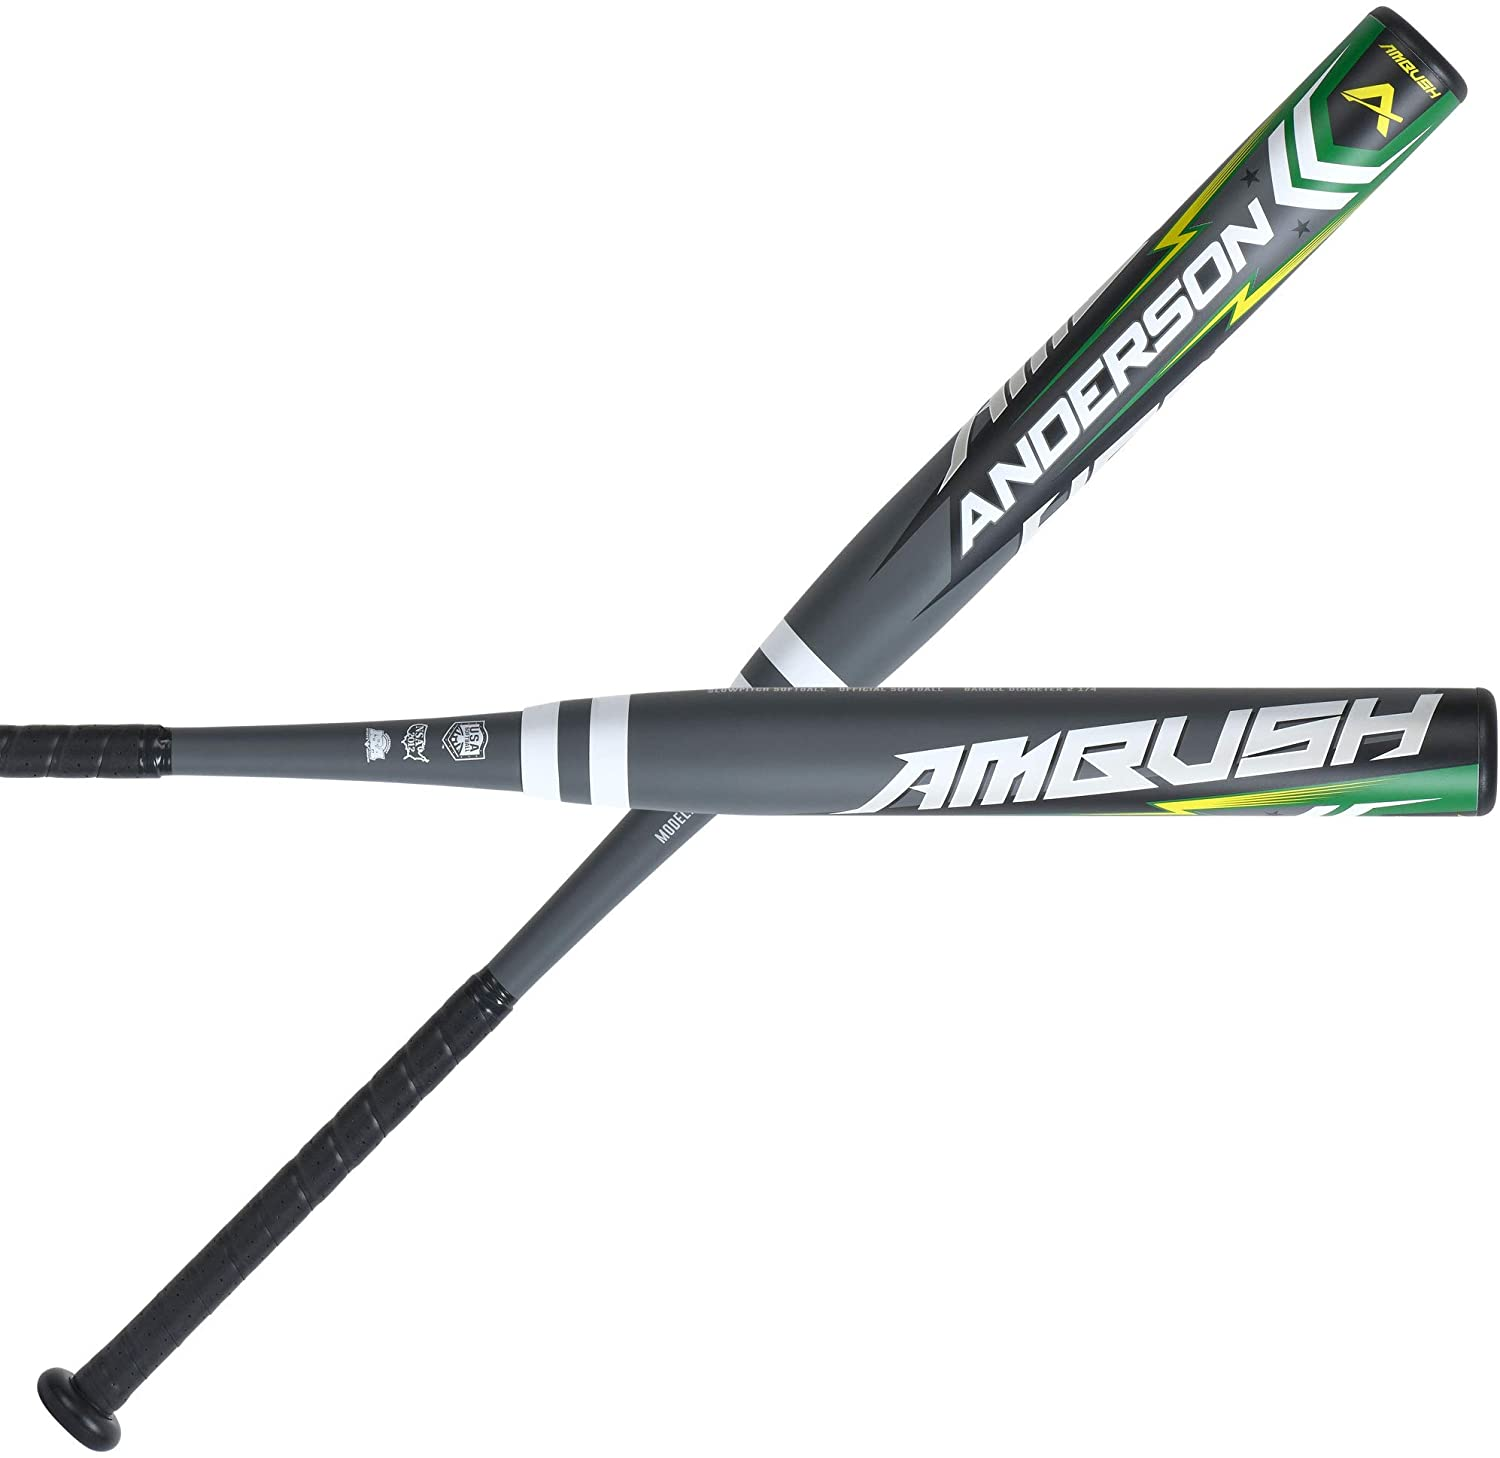 anderson-ambush-2021-composite-slowpitch-softball-bat-34-inch-30-oz 0110533-3430 Anderson  Anderson Rocketech has been dominating the double wall alloy slowpitch market.